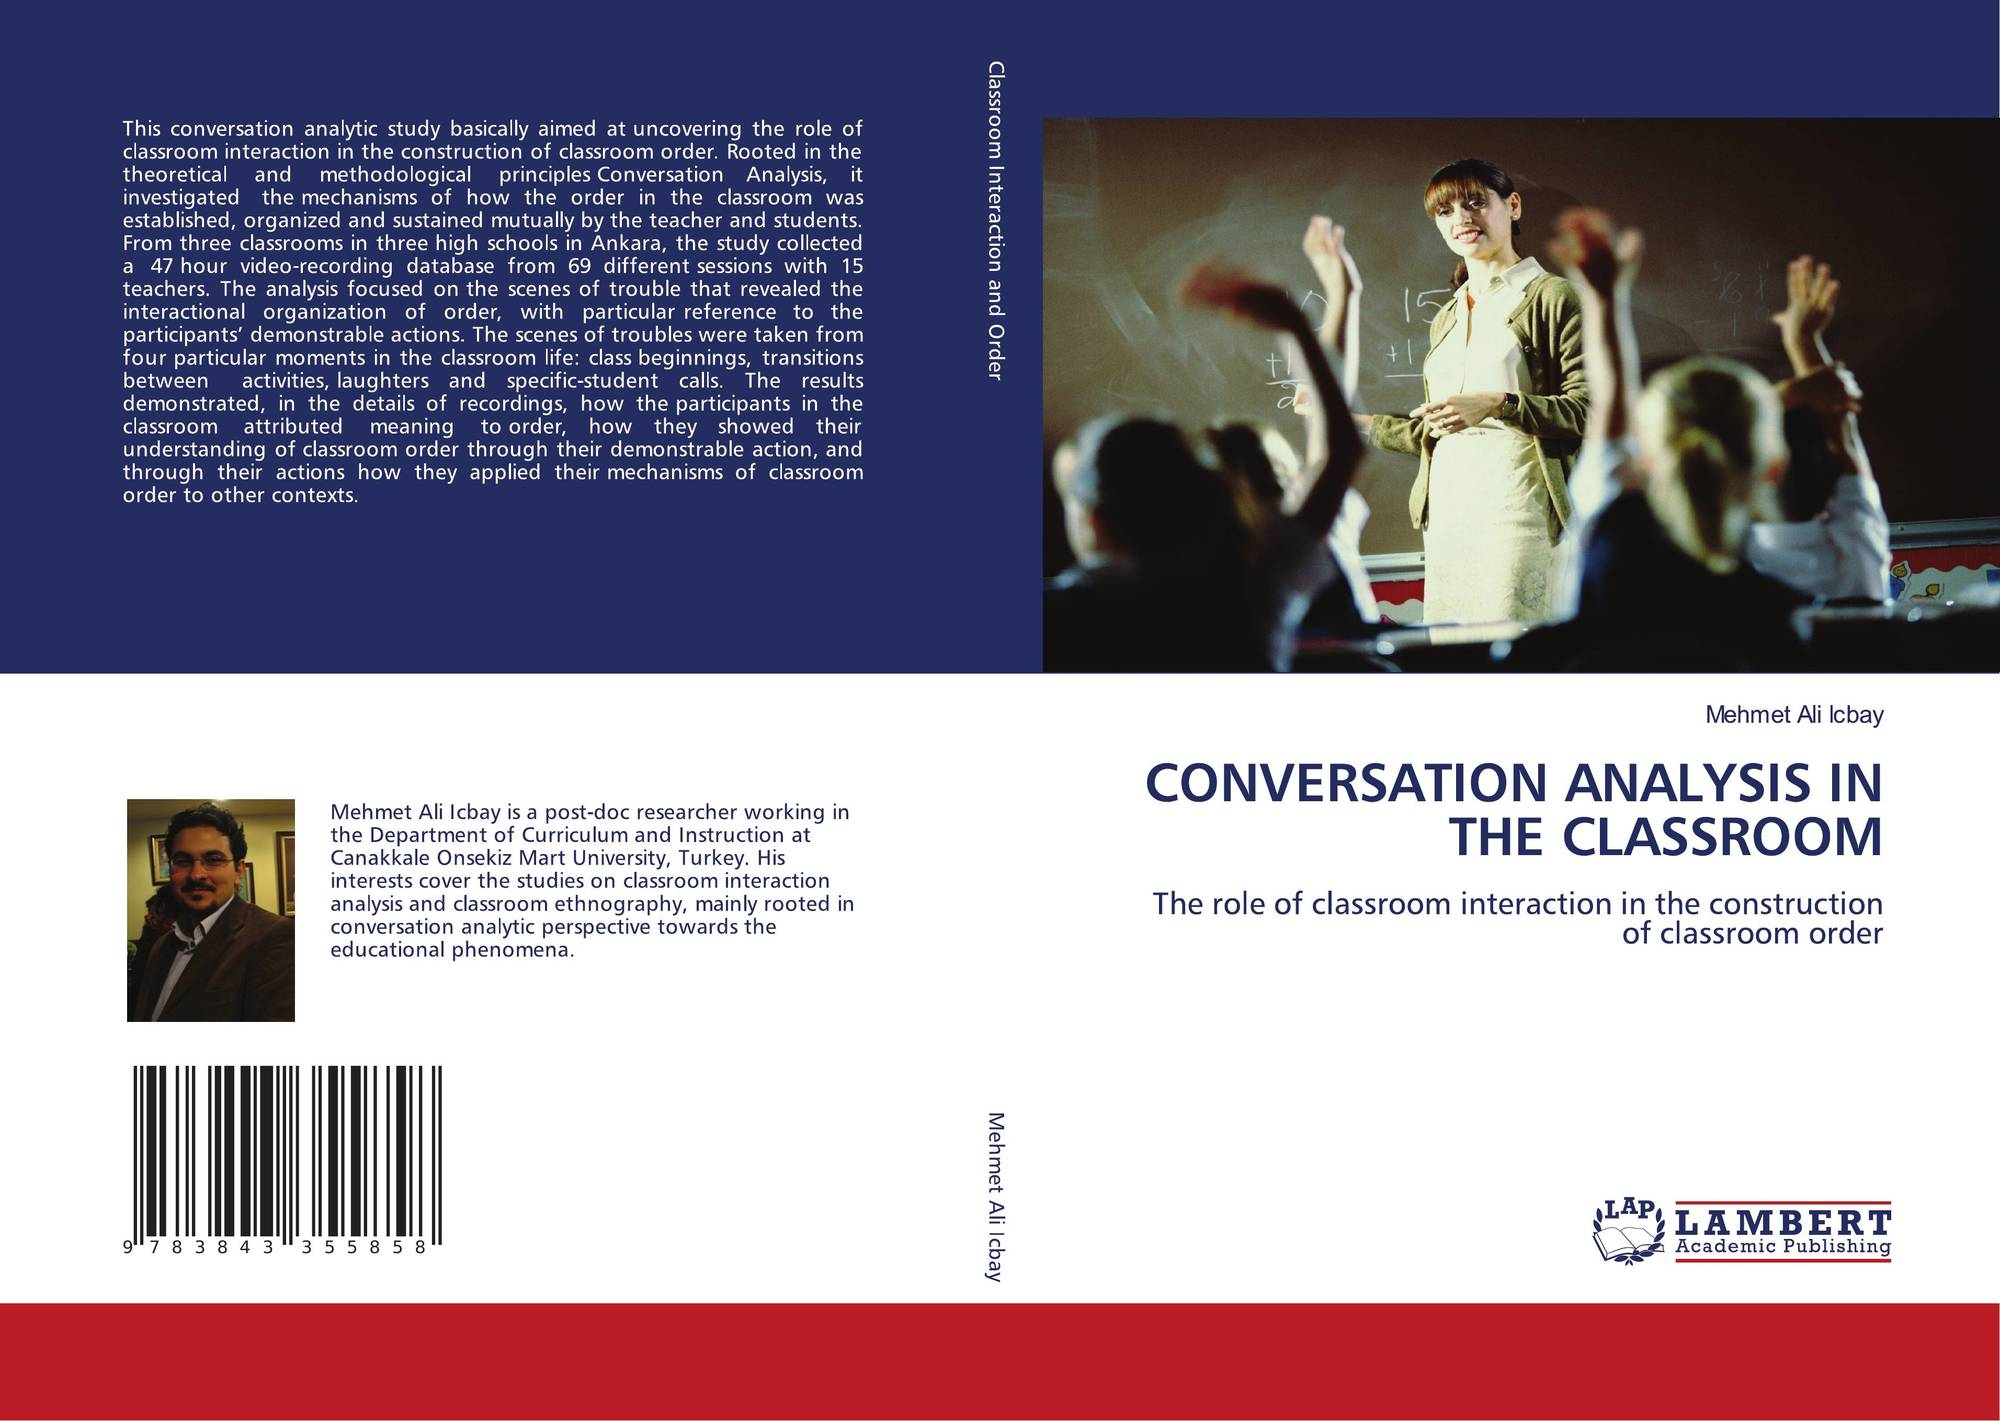 an analysis of conversation This analysis is essential for formulating the rehabilitation project adapted to each patient, and for explaining patient difficulties to family members, neighbours and health professionals improving communication is an important goal of rehabilitation procedures ( ripich, 1994 .